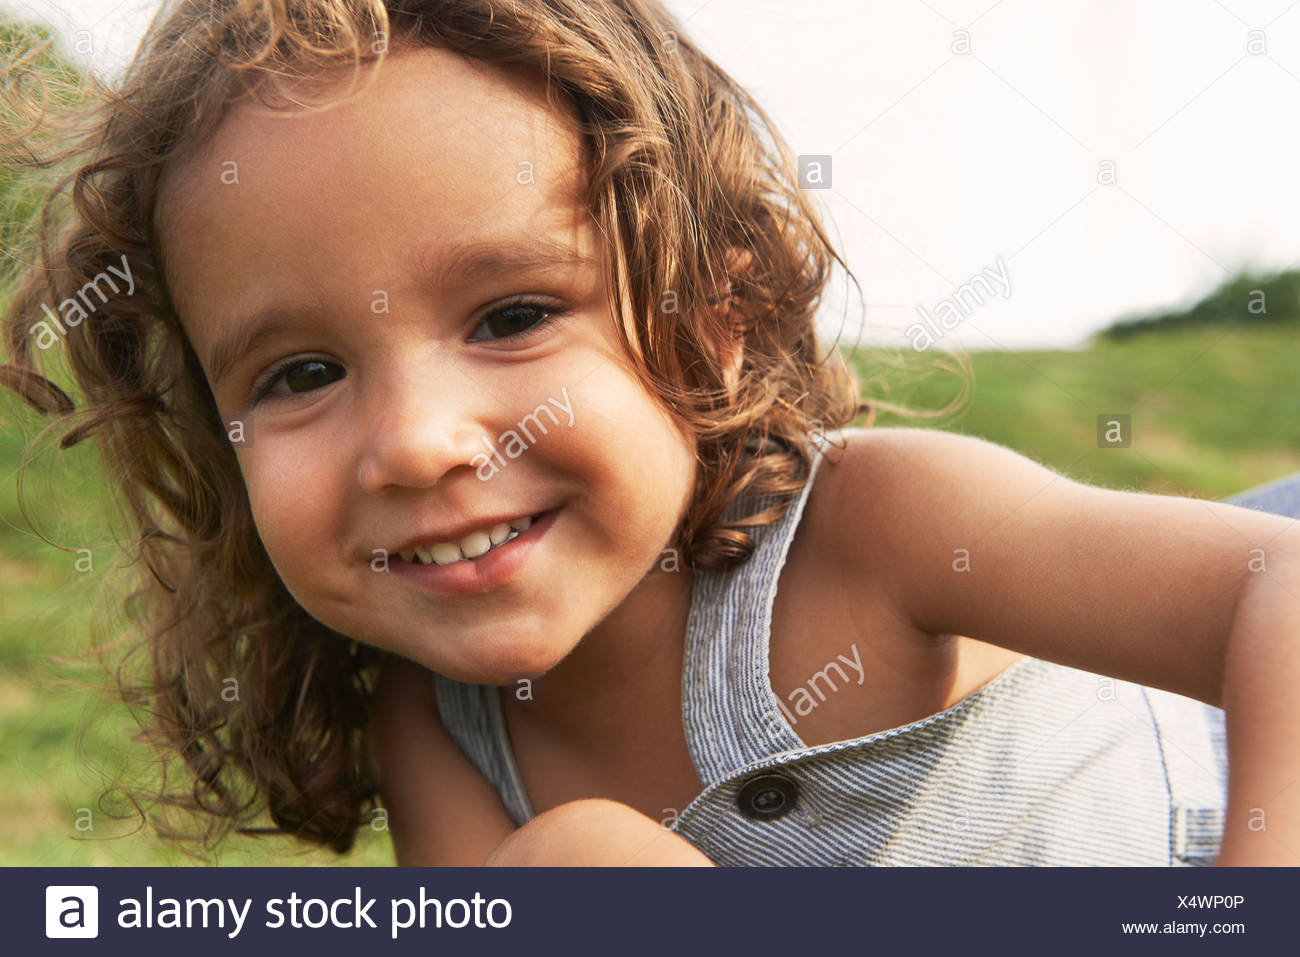 Portrait of young boy with brown hair, smiling - Stock Image